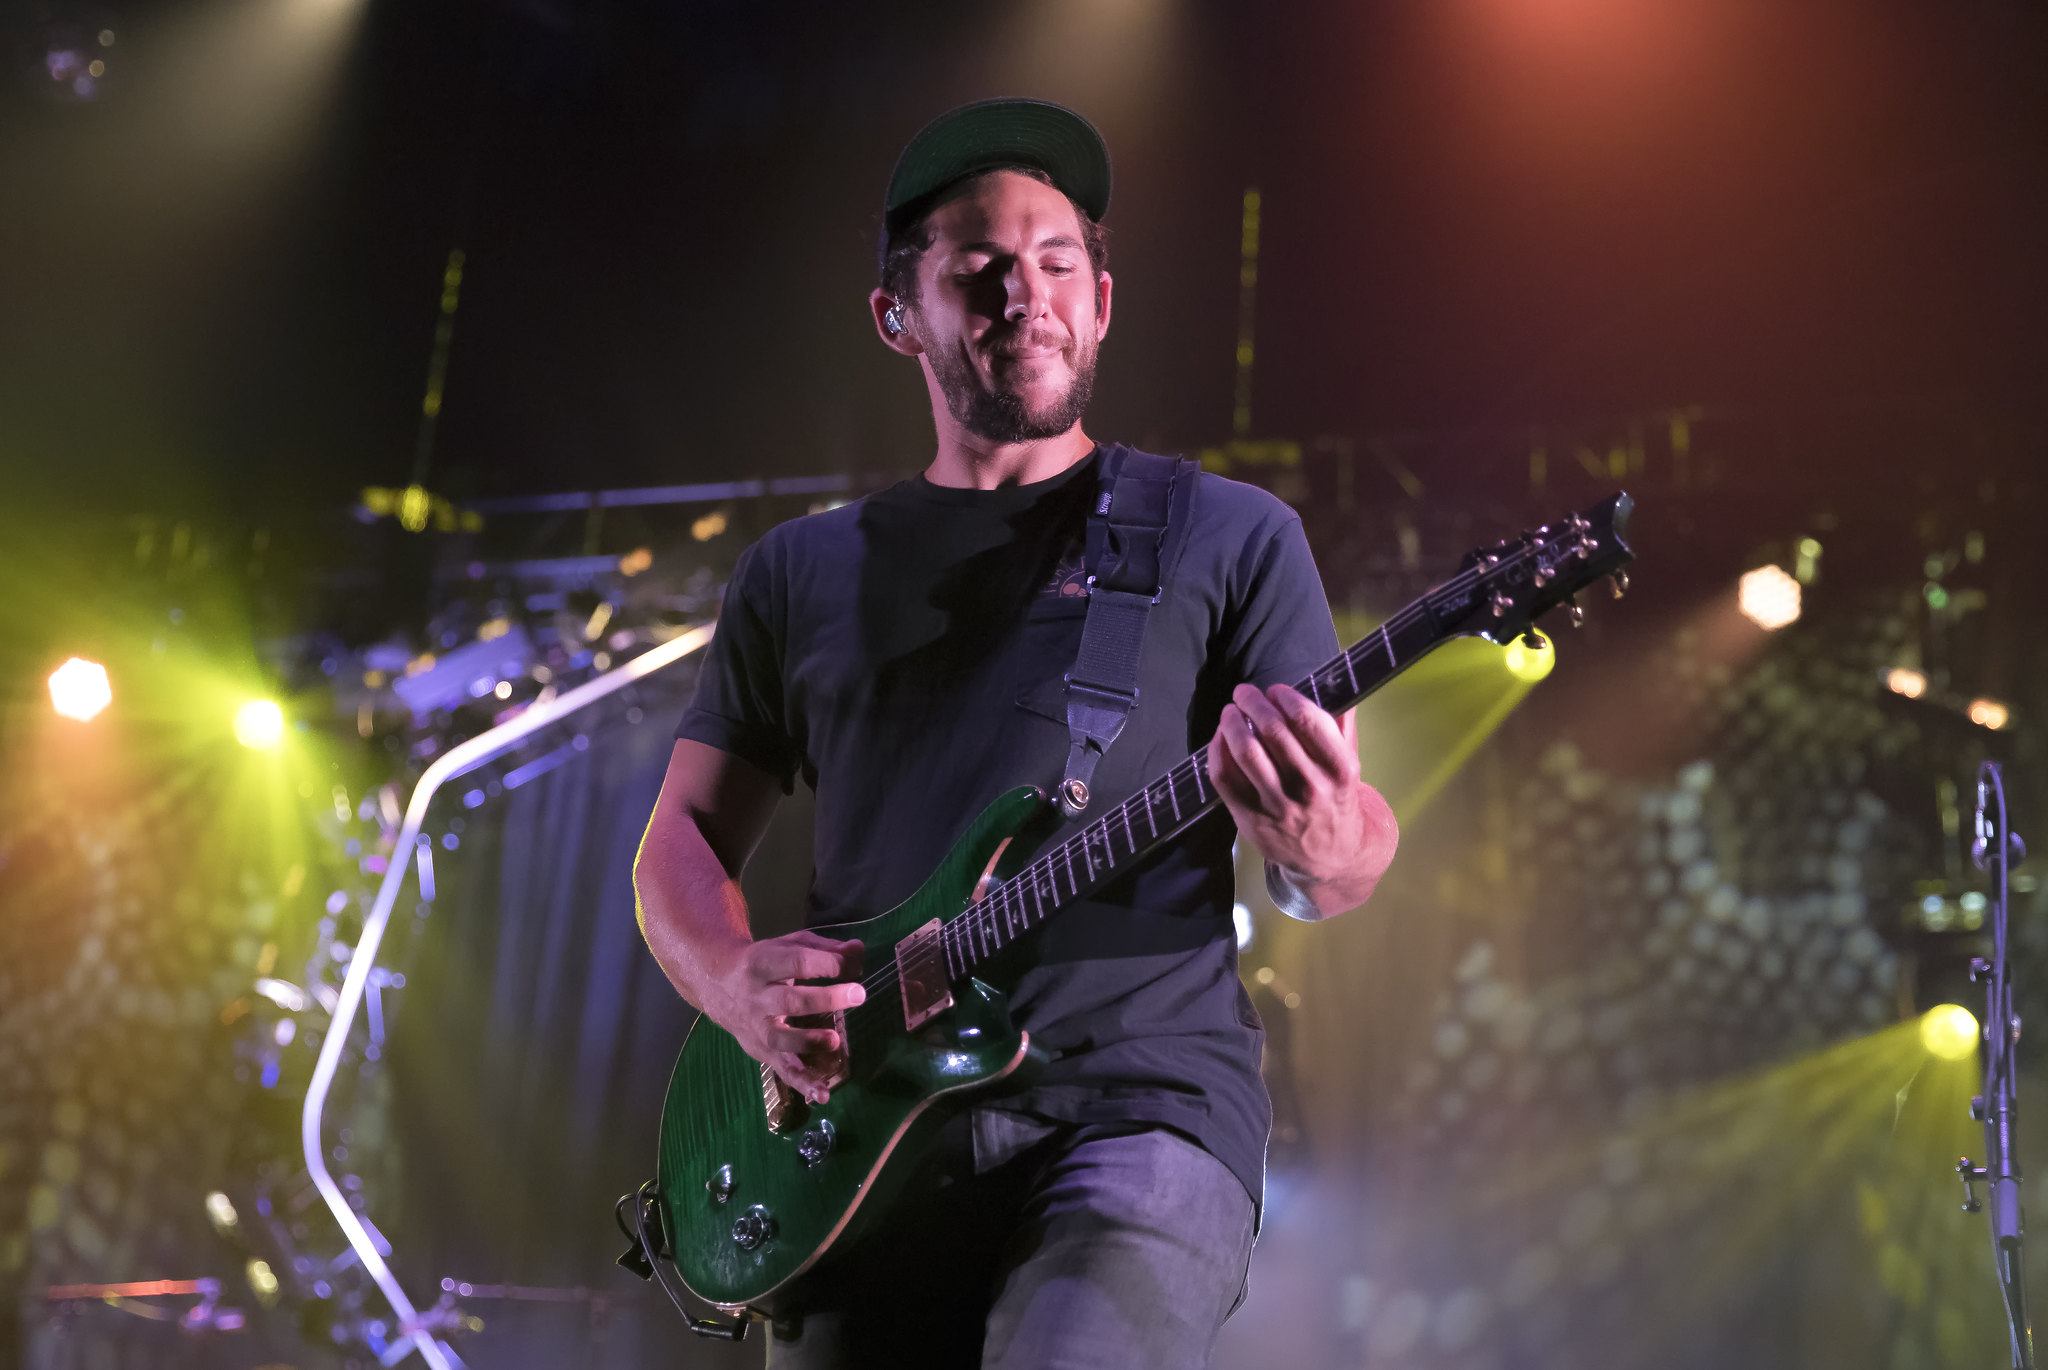 Zach Meyerowitz of Rebelution